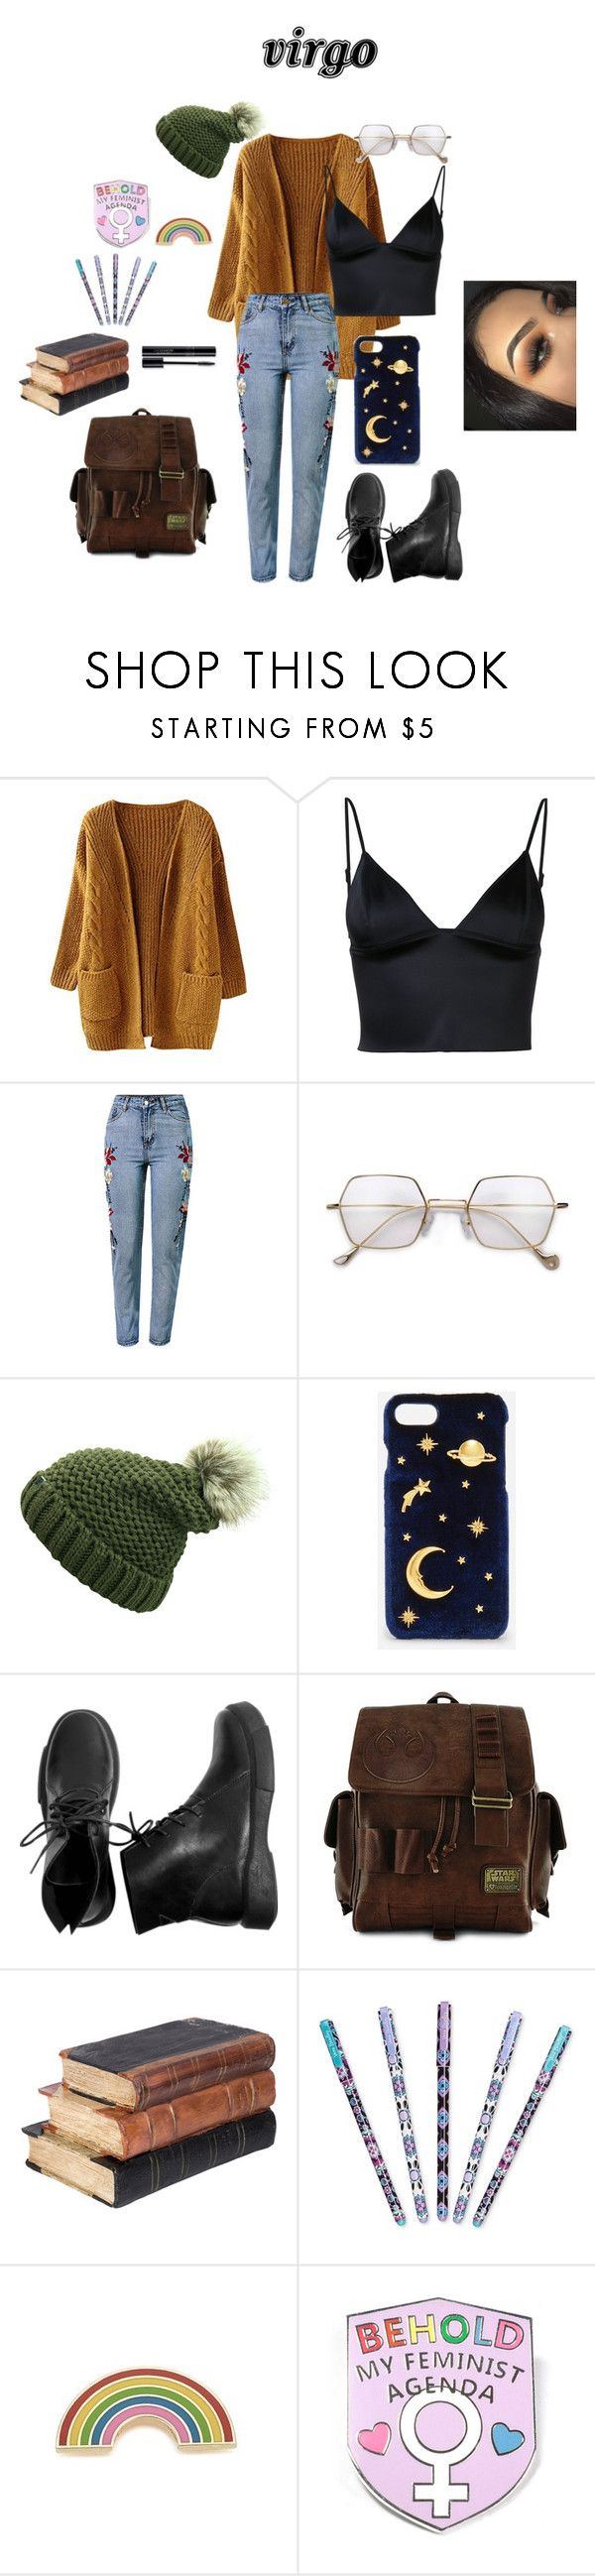 """virgo"" by punkrockwasneverdead on Polyvore featuring T By Alexander Wang, WithChic, CHARLES & KEITH, Loungefly, Vera Bradley, Georgia Perry, cute, zodiac and Virgo"